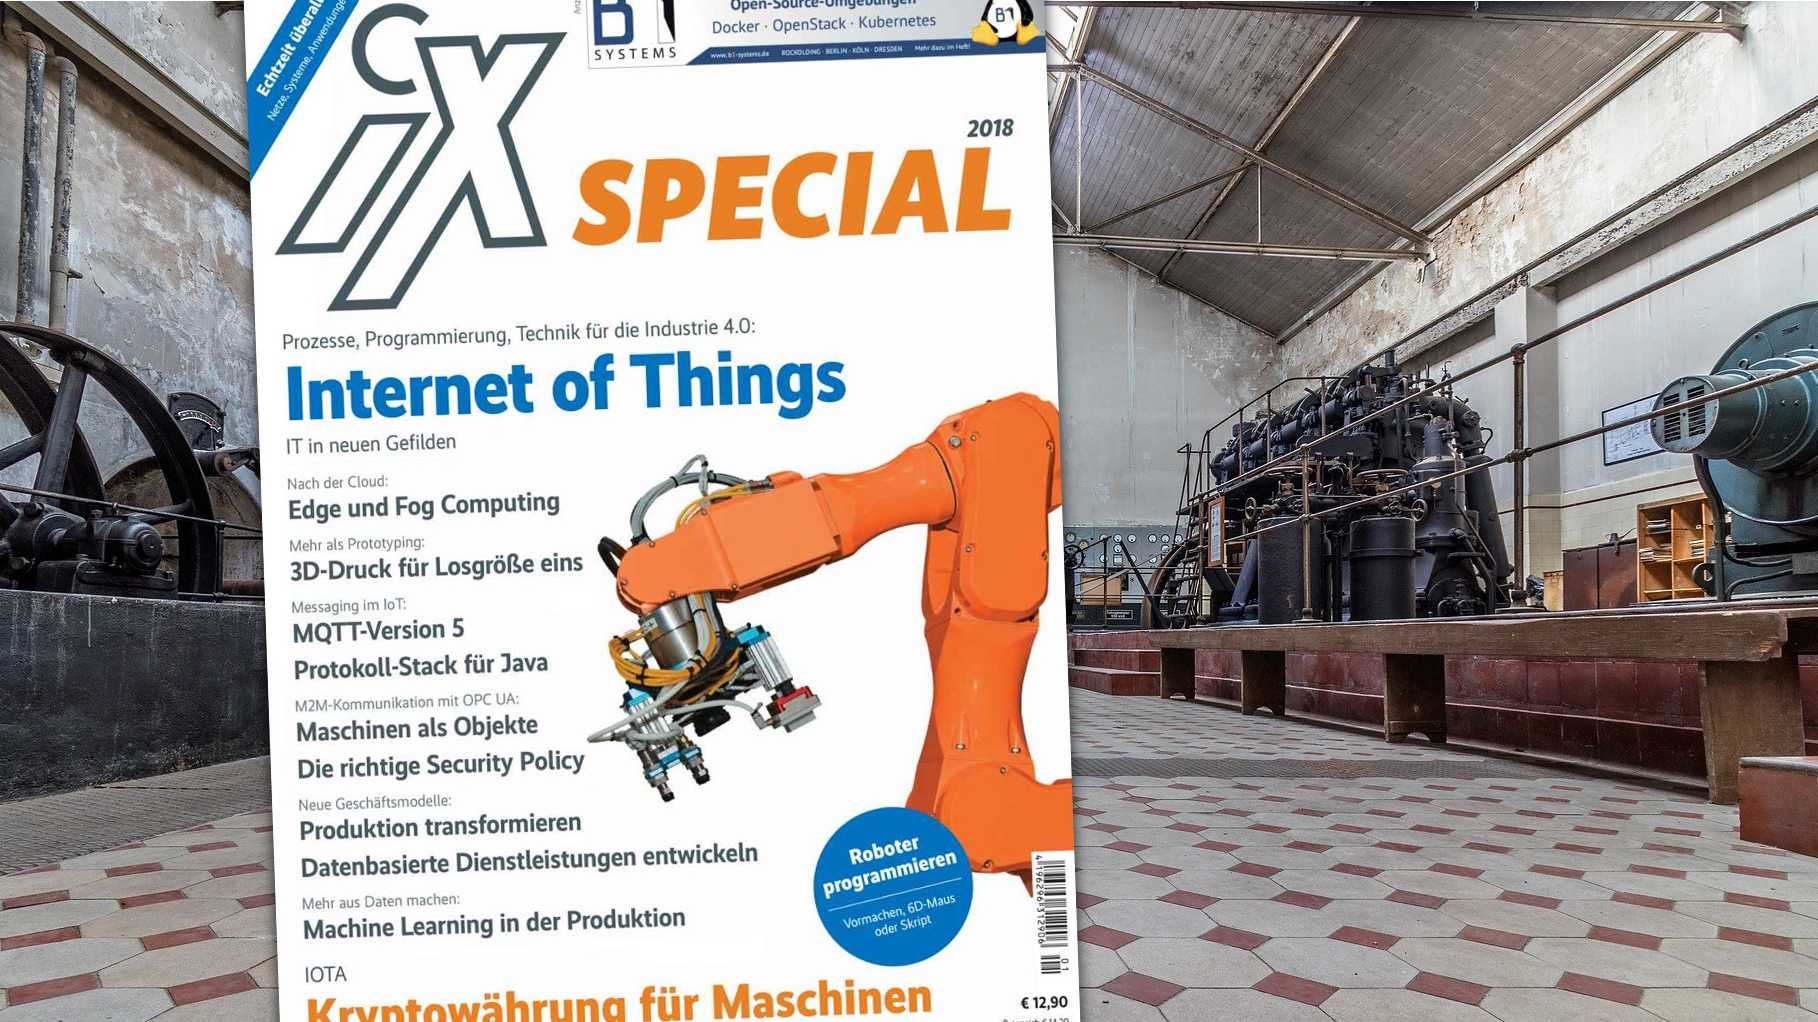 iX Special: Internet of Things und Industrie 4.0